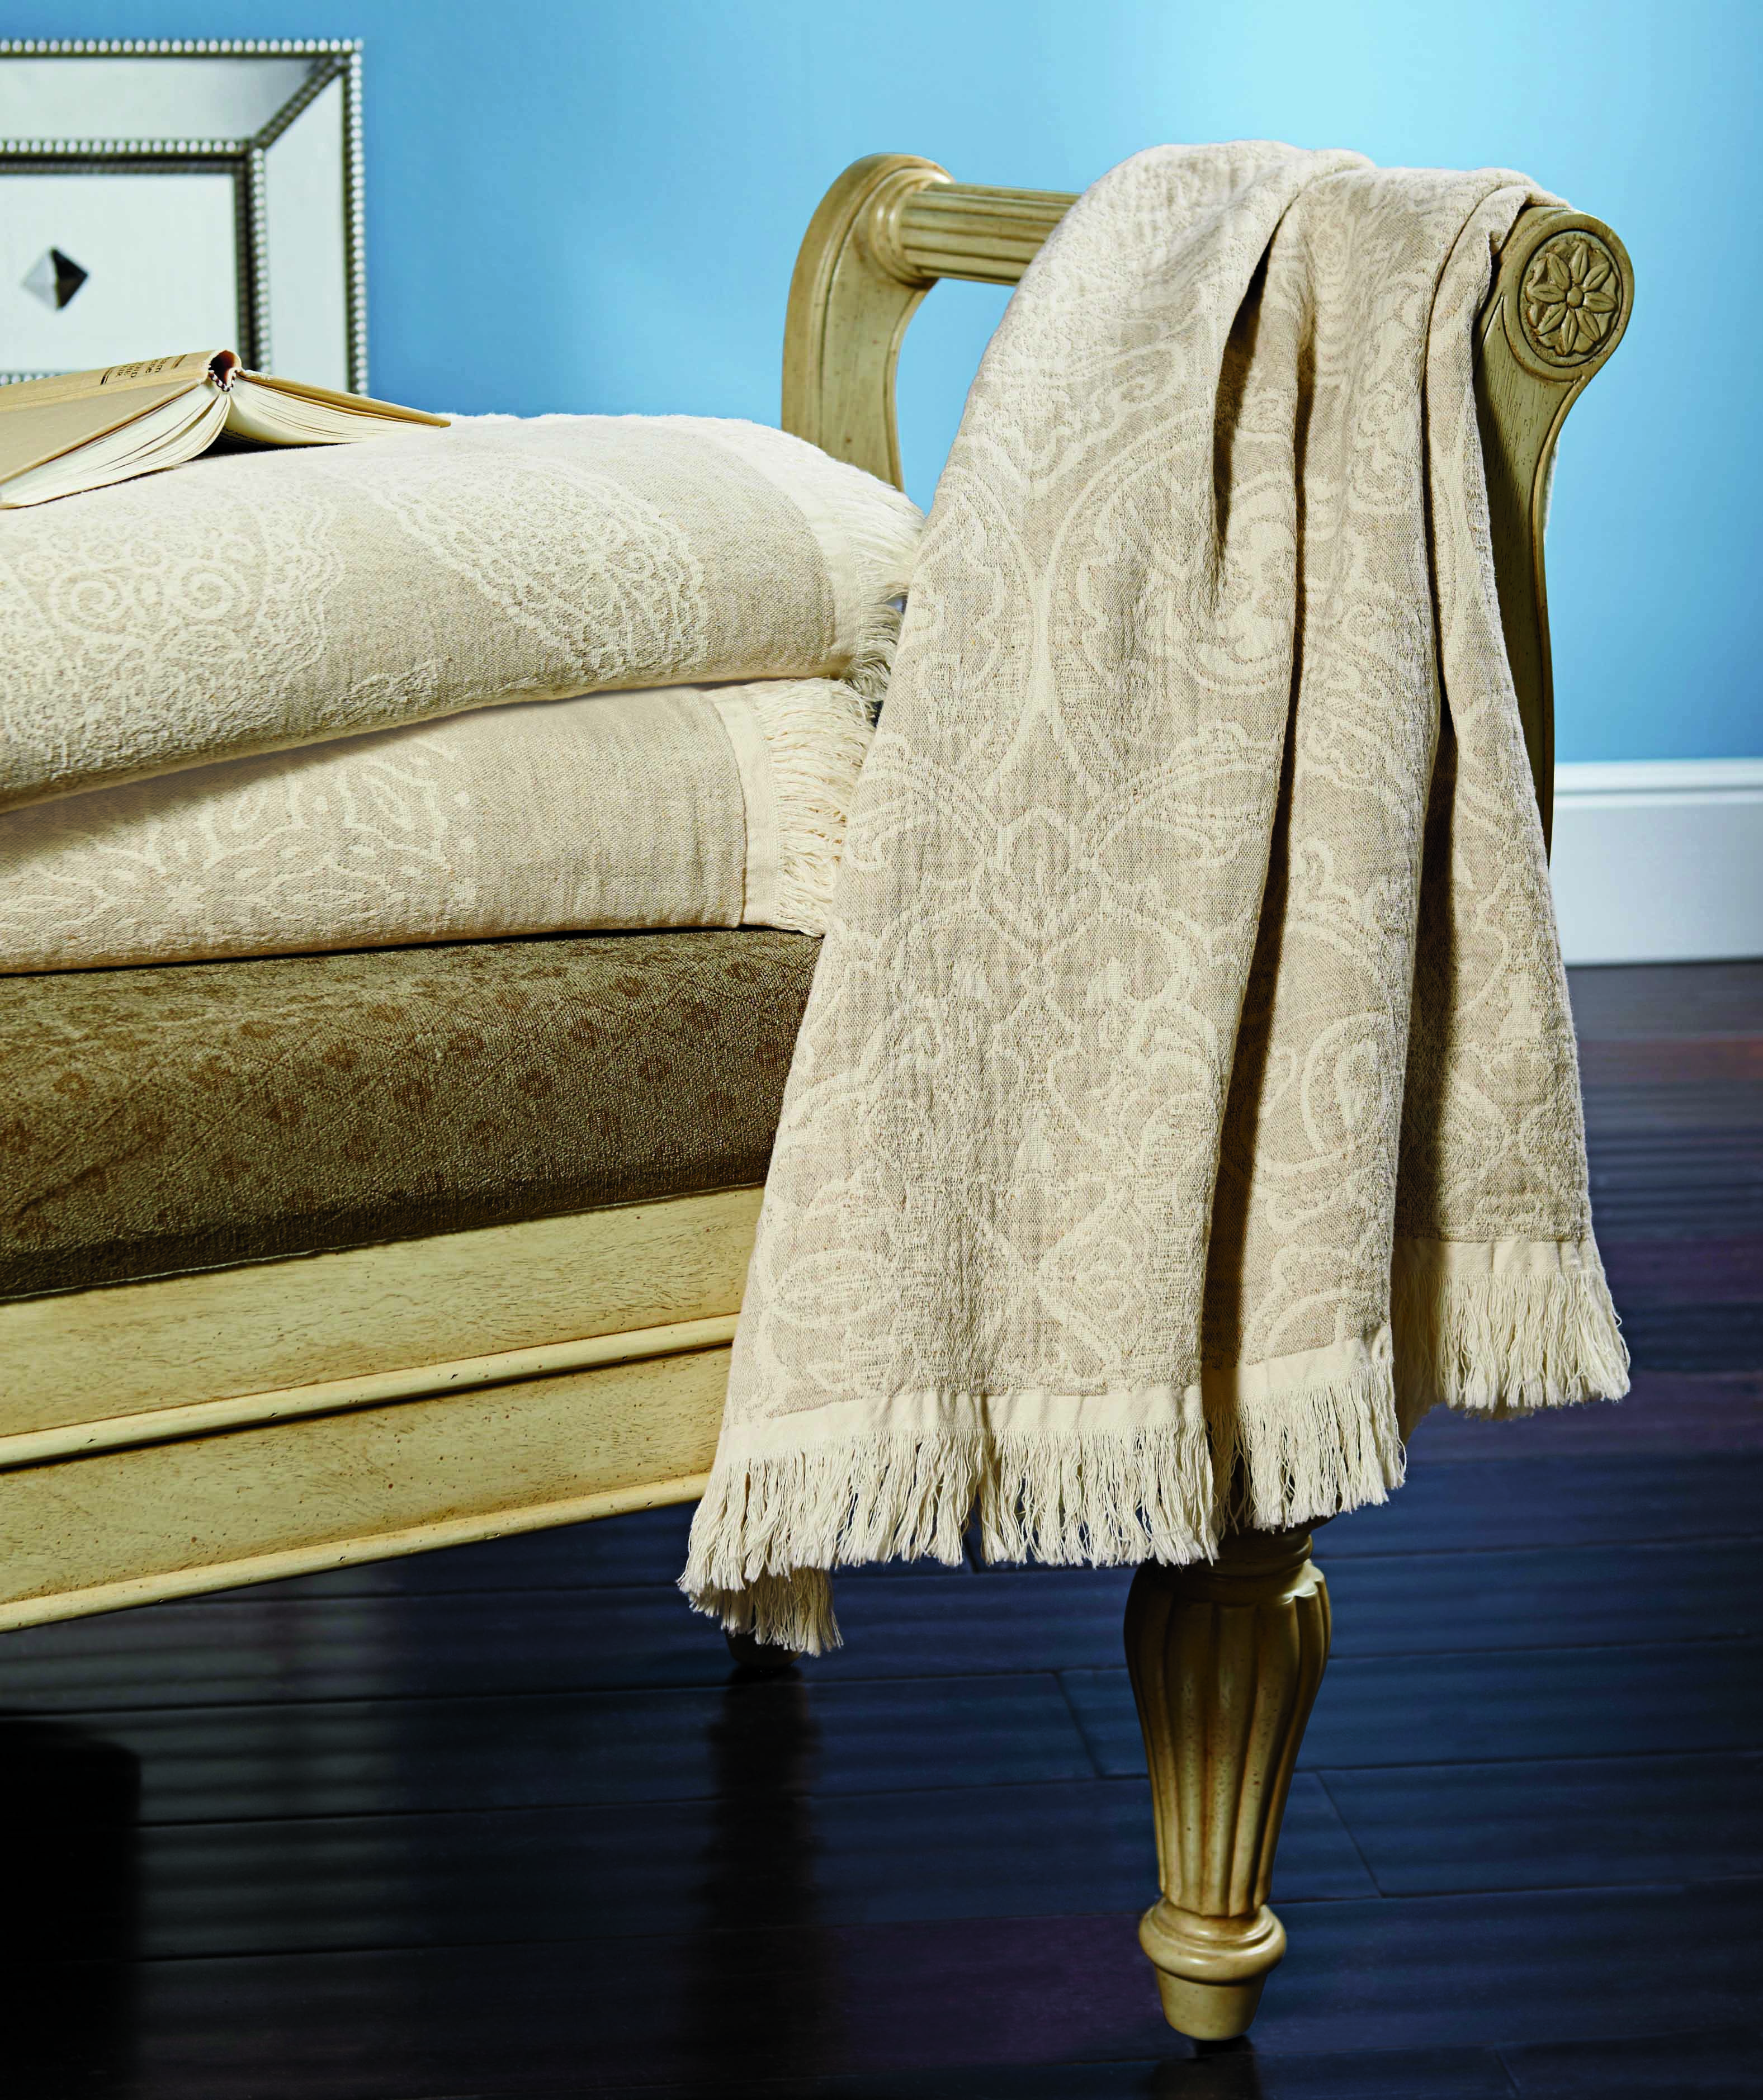 amazing Tuesday Morning Peacock Alley Part - 6: Find luxury Peacock Alley throws for an incredible price at Tuesday Morning!  #PeacockAlley #TuesdayMorning